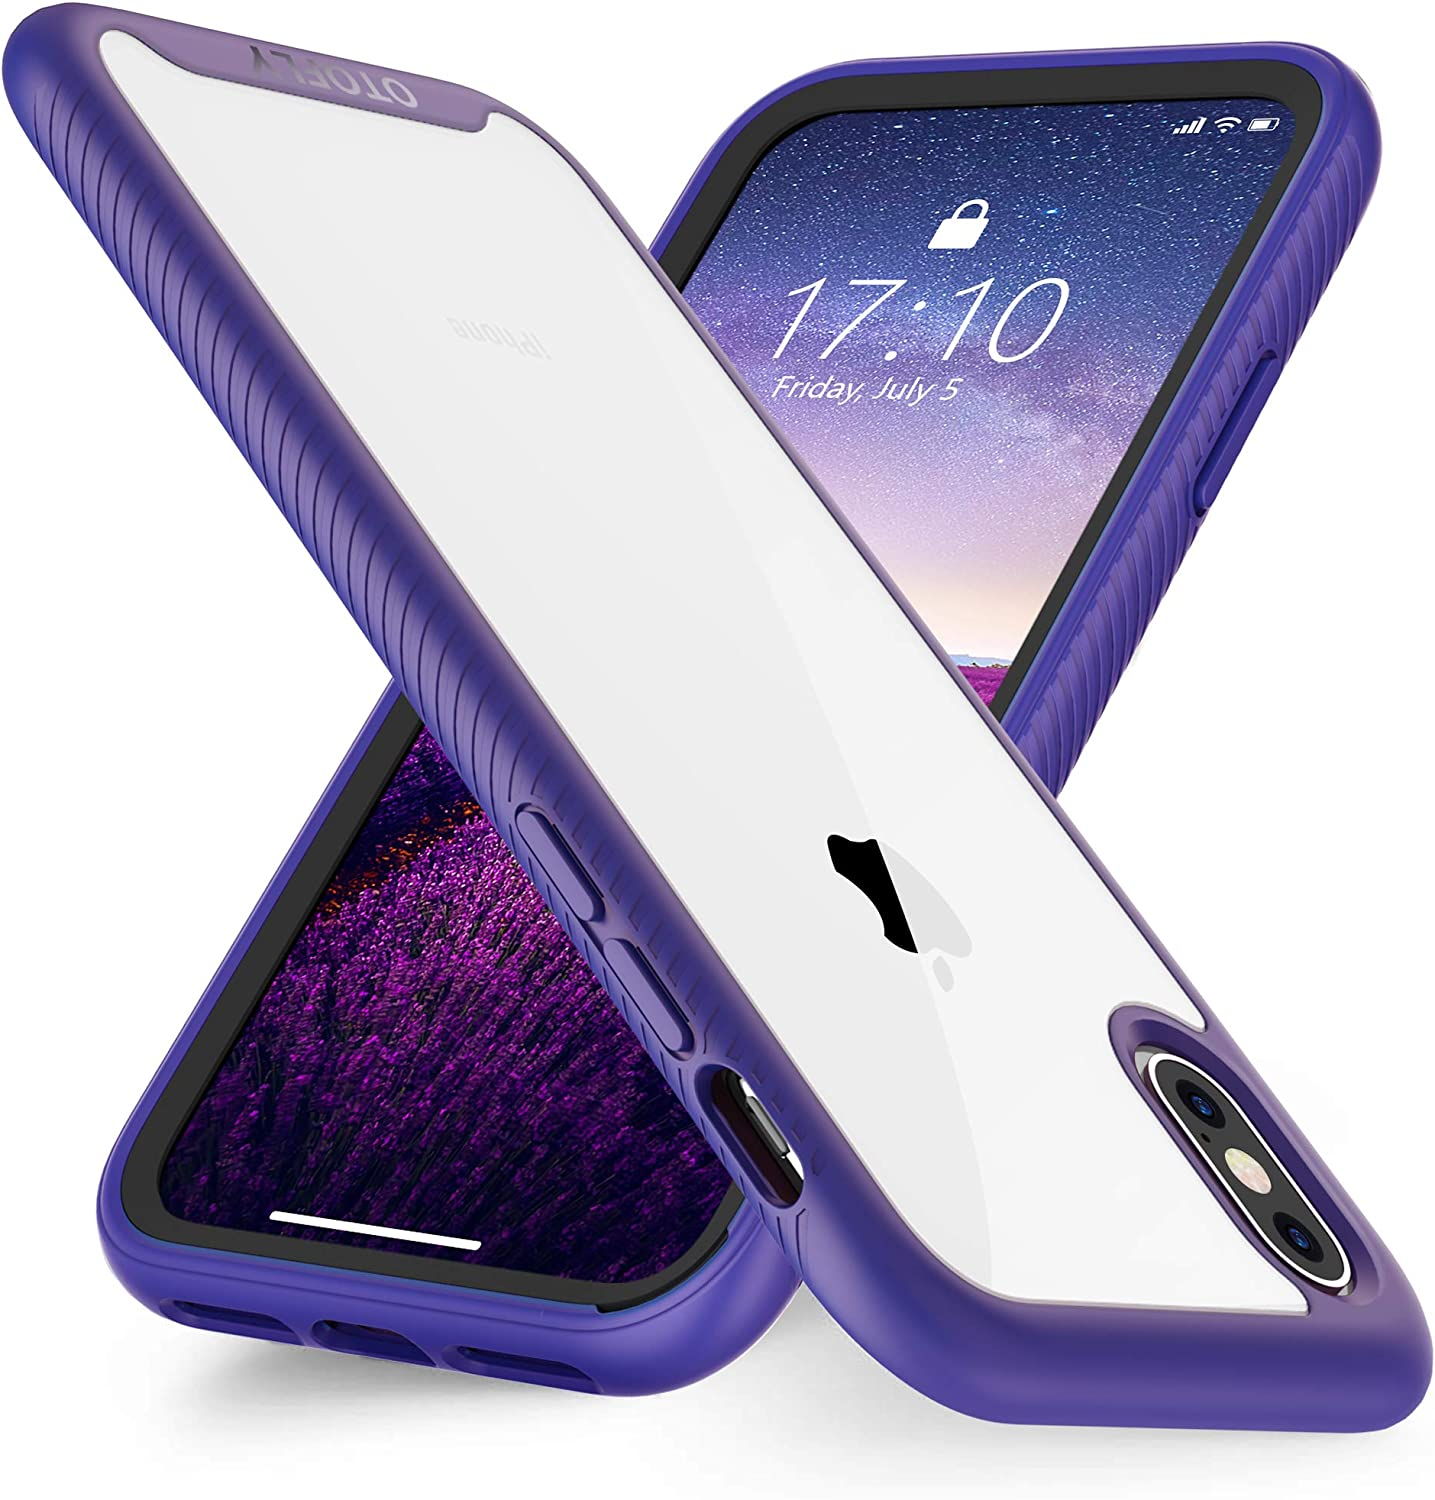 OTOFLY iPhone Xs Max Case,iPhone Xs Max Phone Case,2 in 1 Clear Protective iPhone Case Soft Silicone Bumper Cover Anti-Scratch Shockproof Case Compatible with iPhone Xs Max ONLY, (Purple)